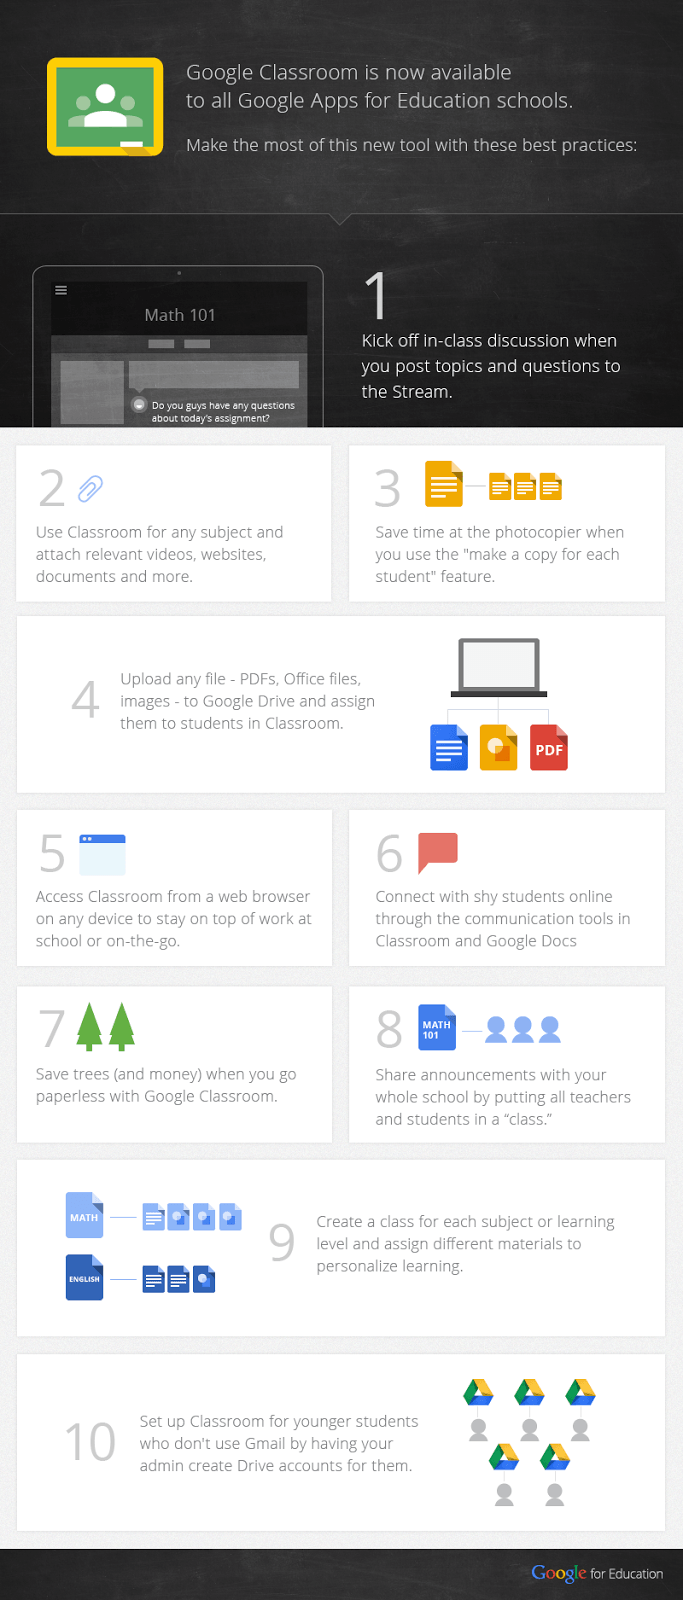 How-To-Use-Google-Classroom-Infographic